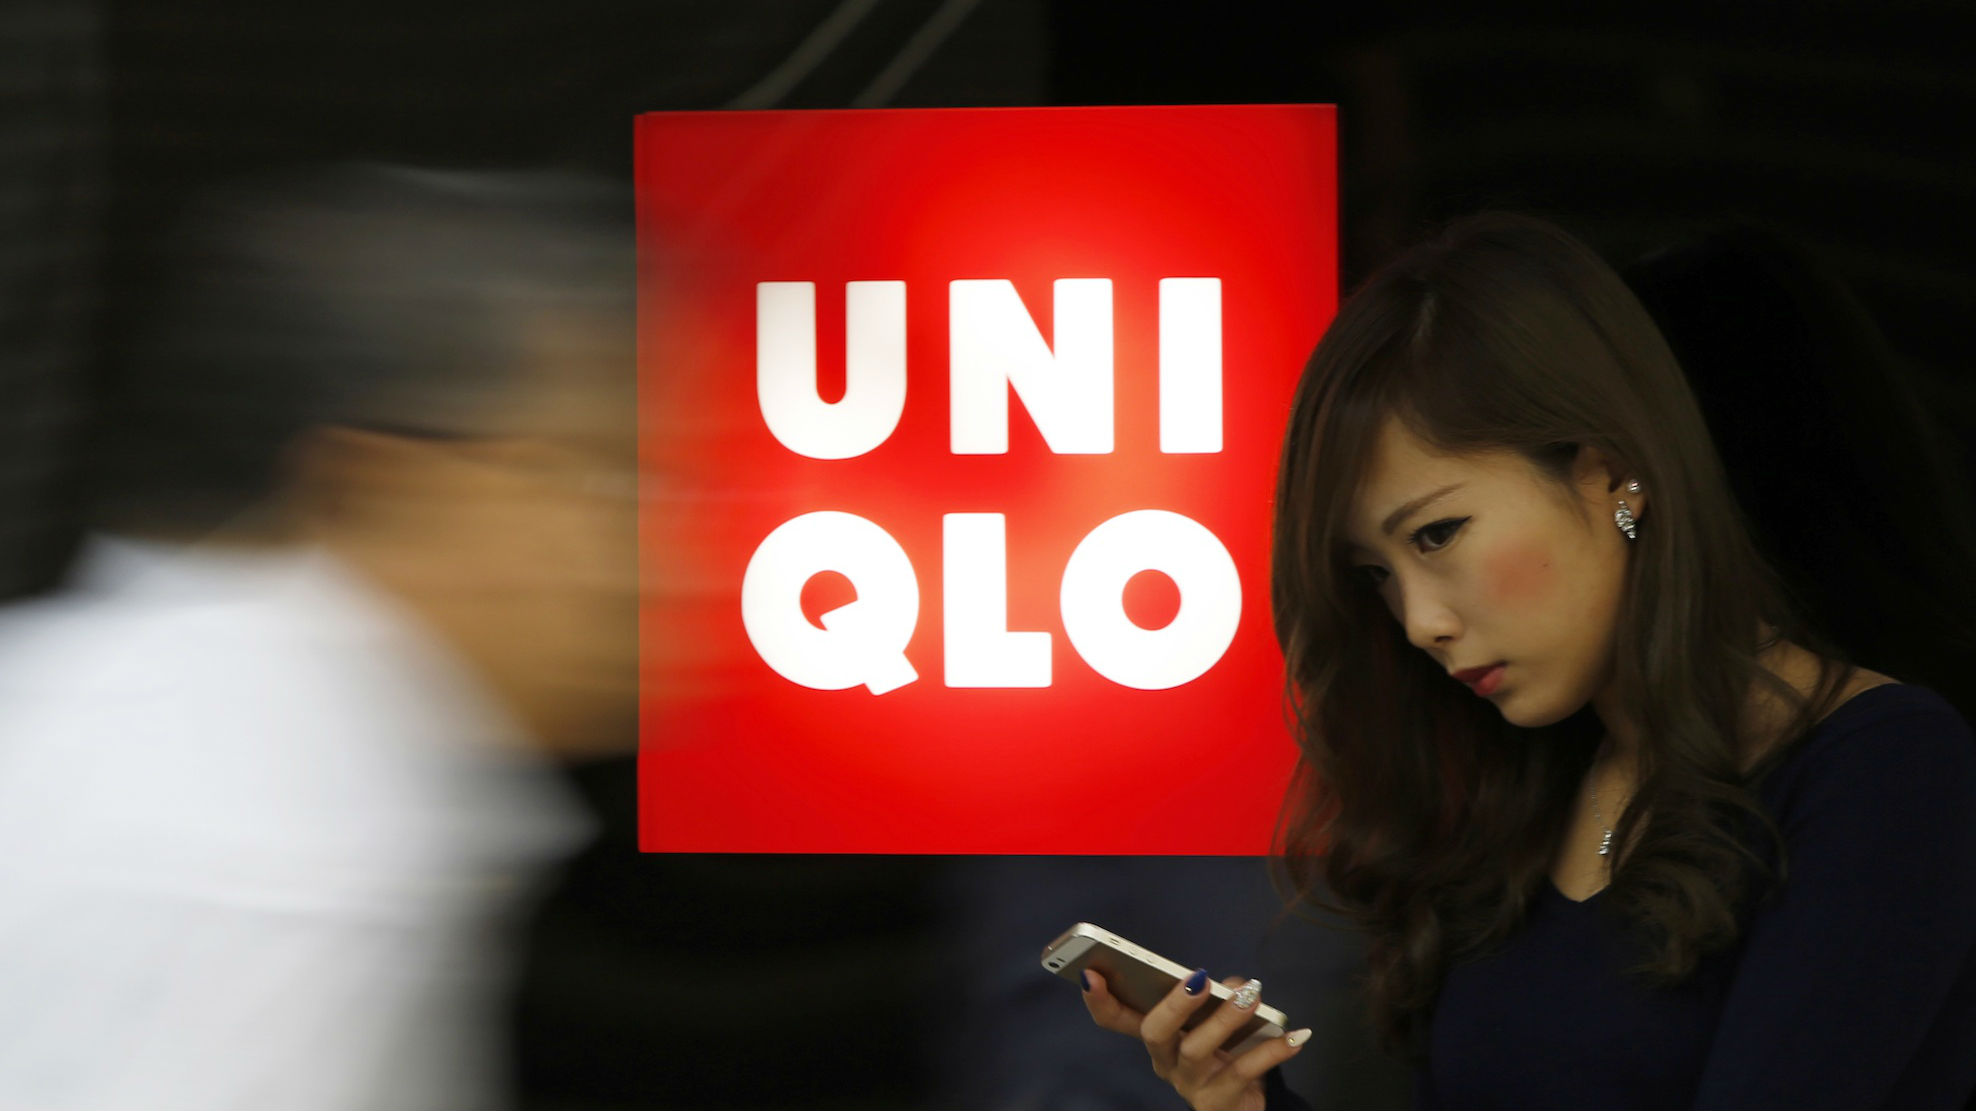 Looks - Criticized uniqlo for poor working conditions video